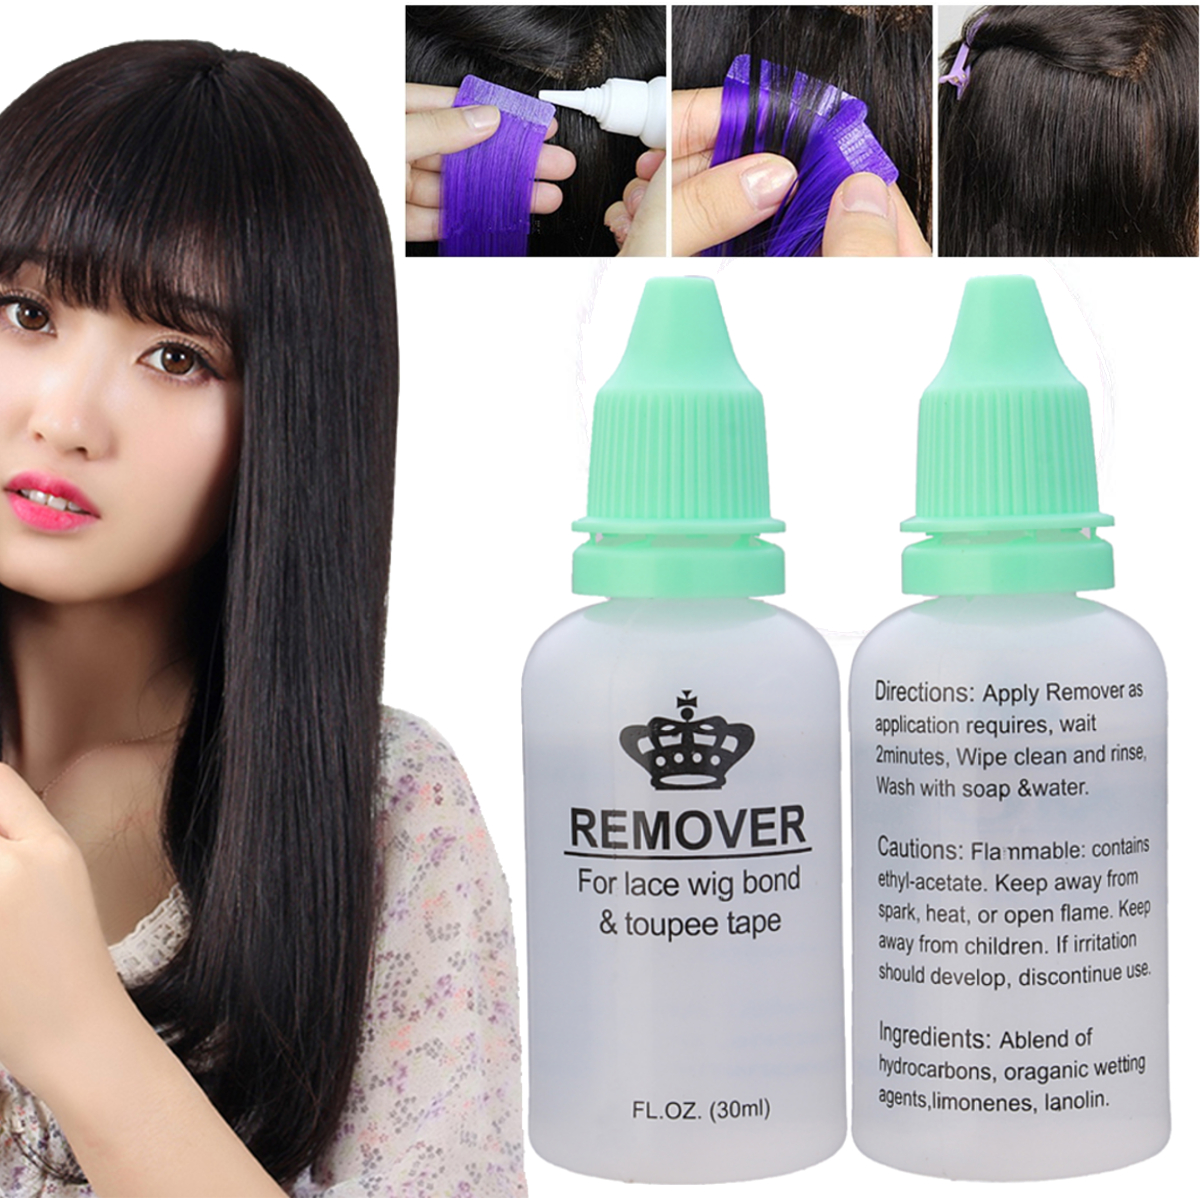 30ml Lace Wig Adhesive Glue Bond Remover Skin Tape Hair Extensions Tool